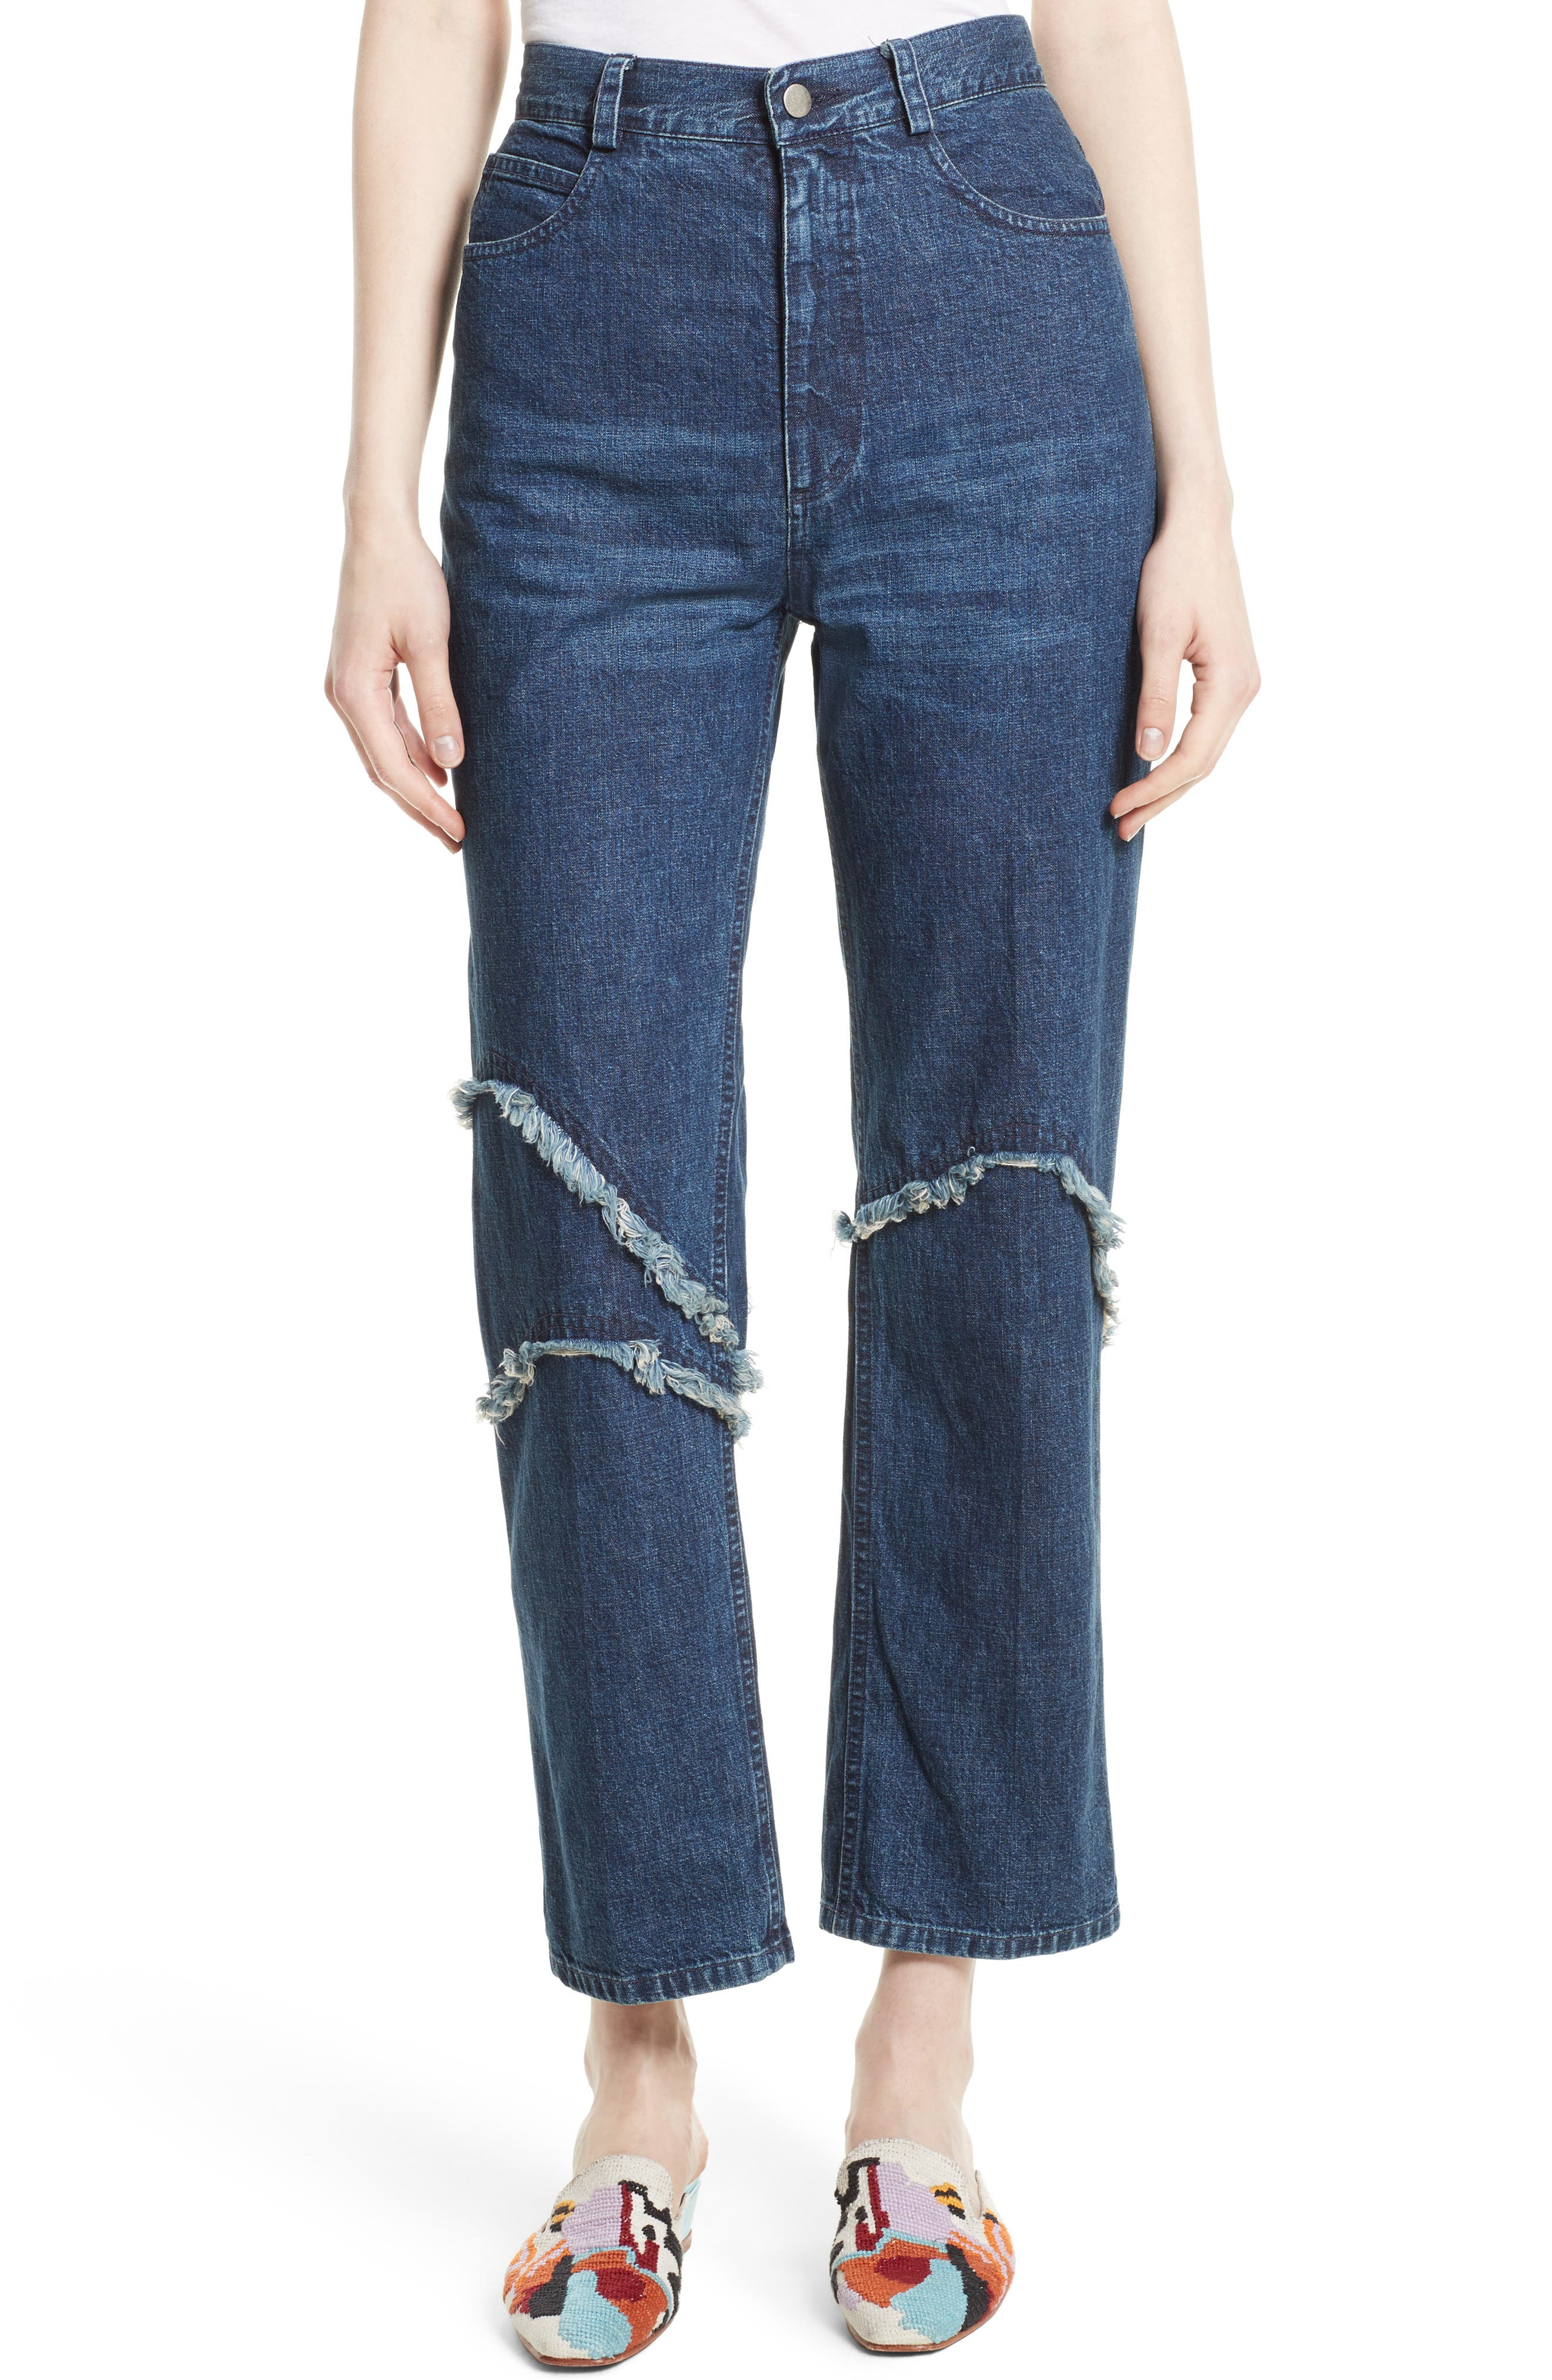 Ticklers Frayed High Waist Crop Jeans,                         Main,                         color, 420